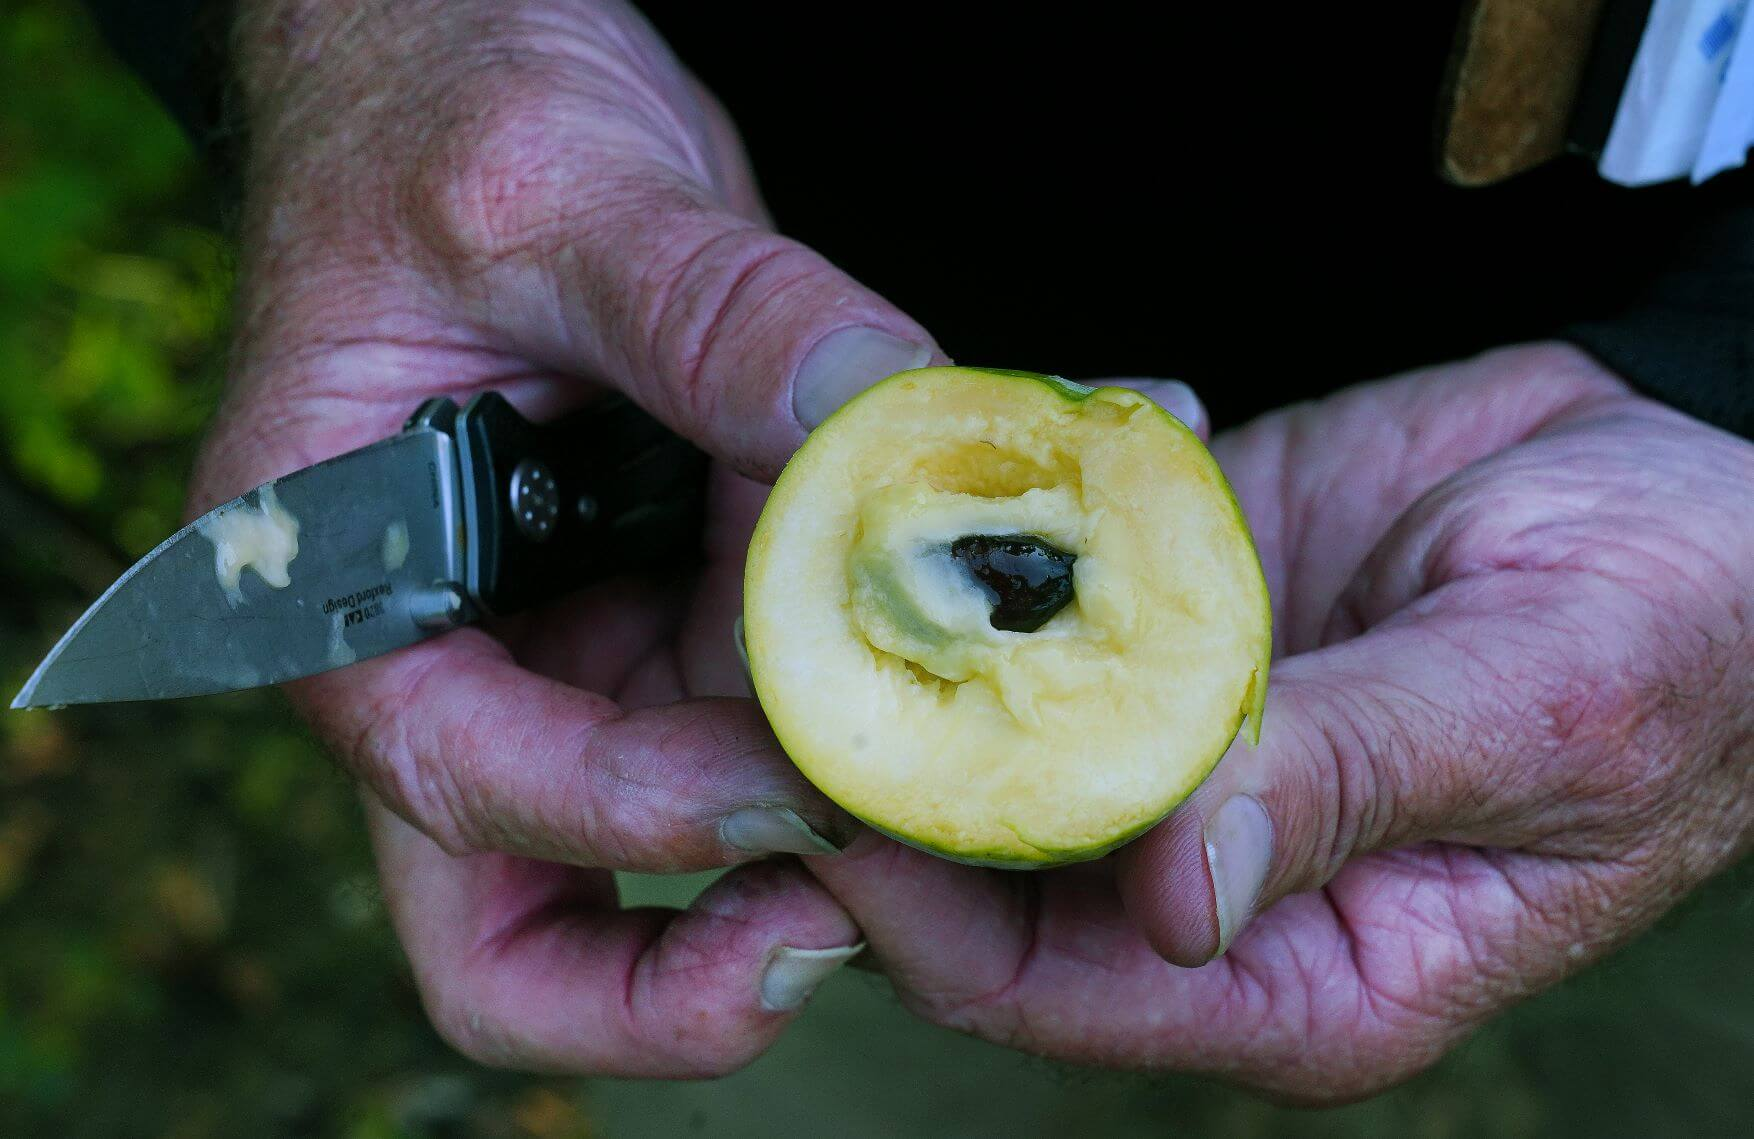 Bruce Bordelon, professor of horticulture, shows off the inside of a pawpaw fruit. Photos by Tom Campbell.